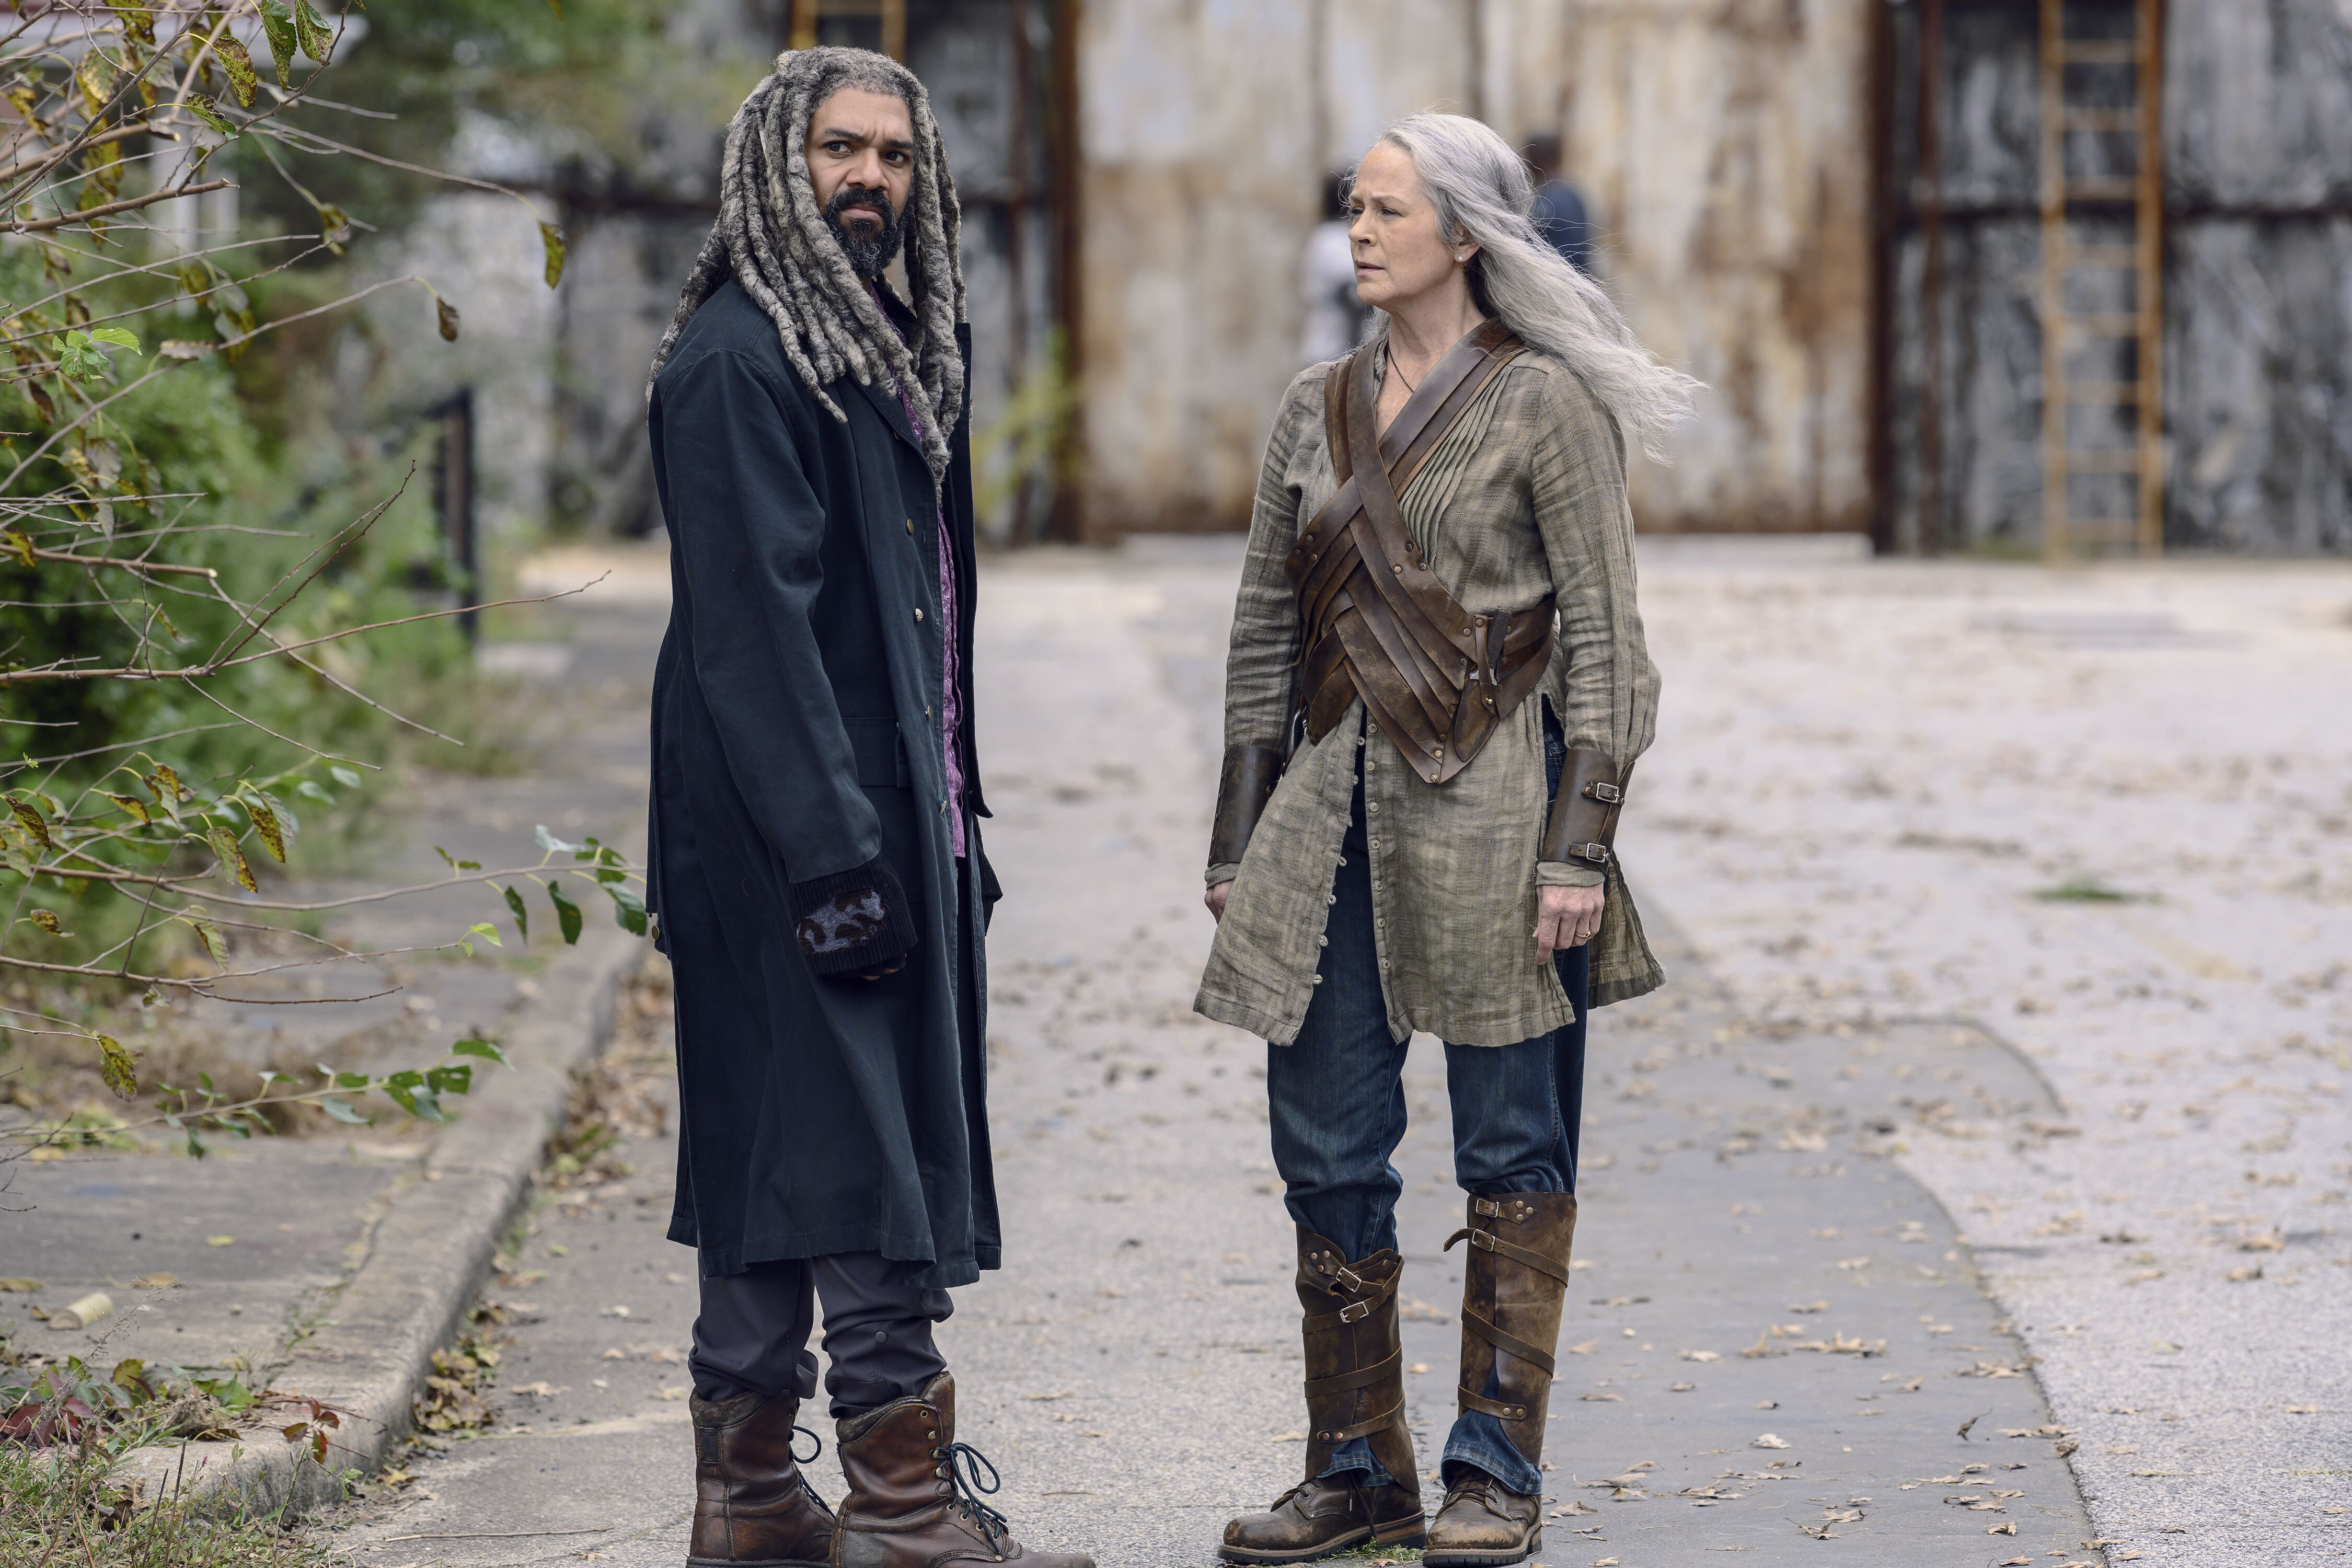 The Walking Dead panel: Should Ezekiel tell Carol about his condition?